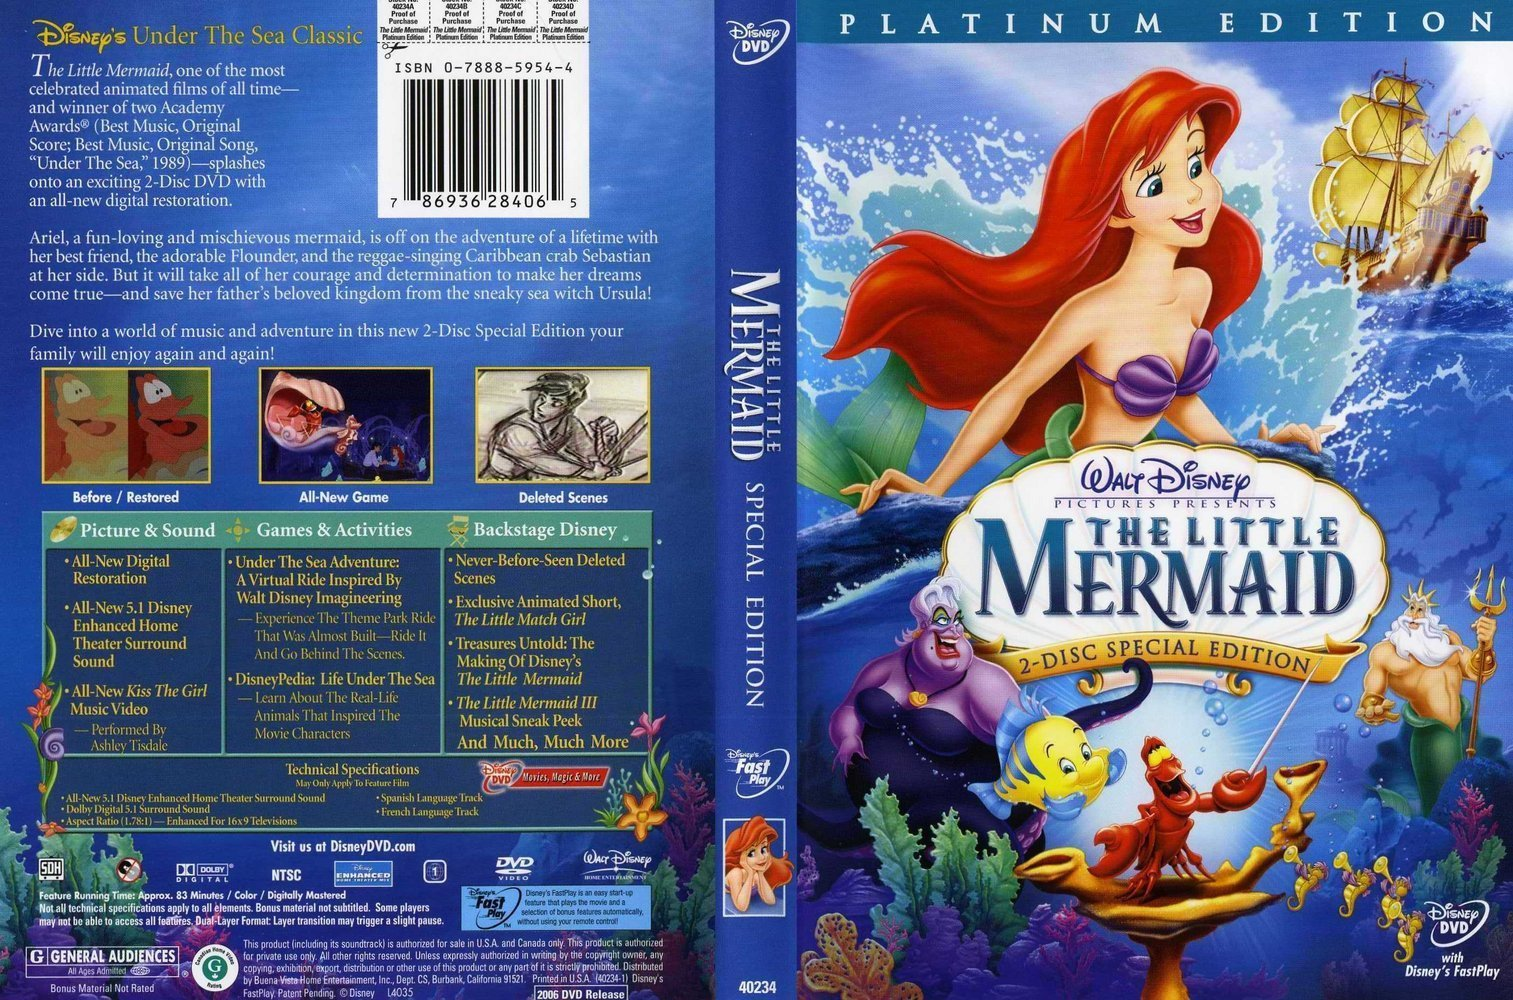 The Little Mermaid 2 Dics Platium Edition DVD Cover